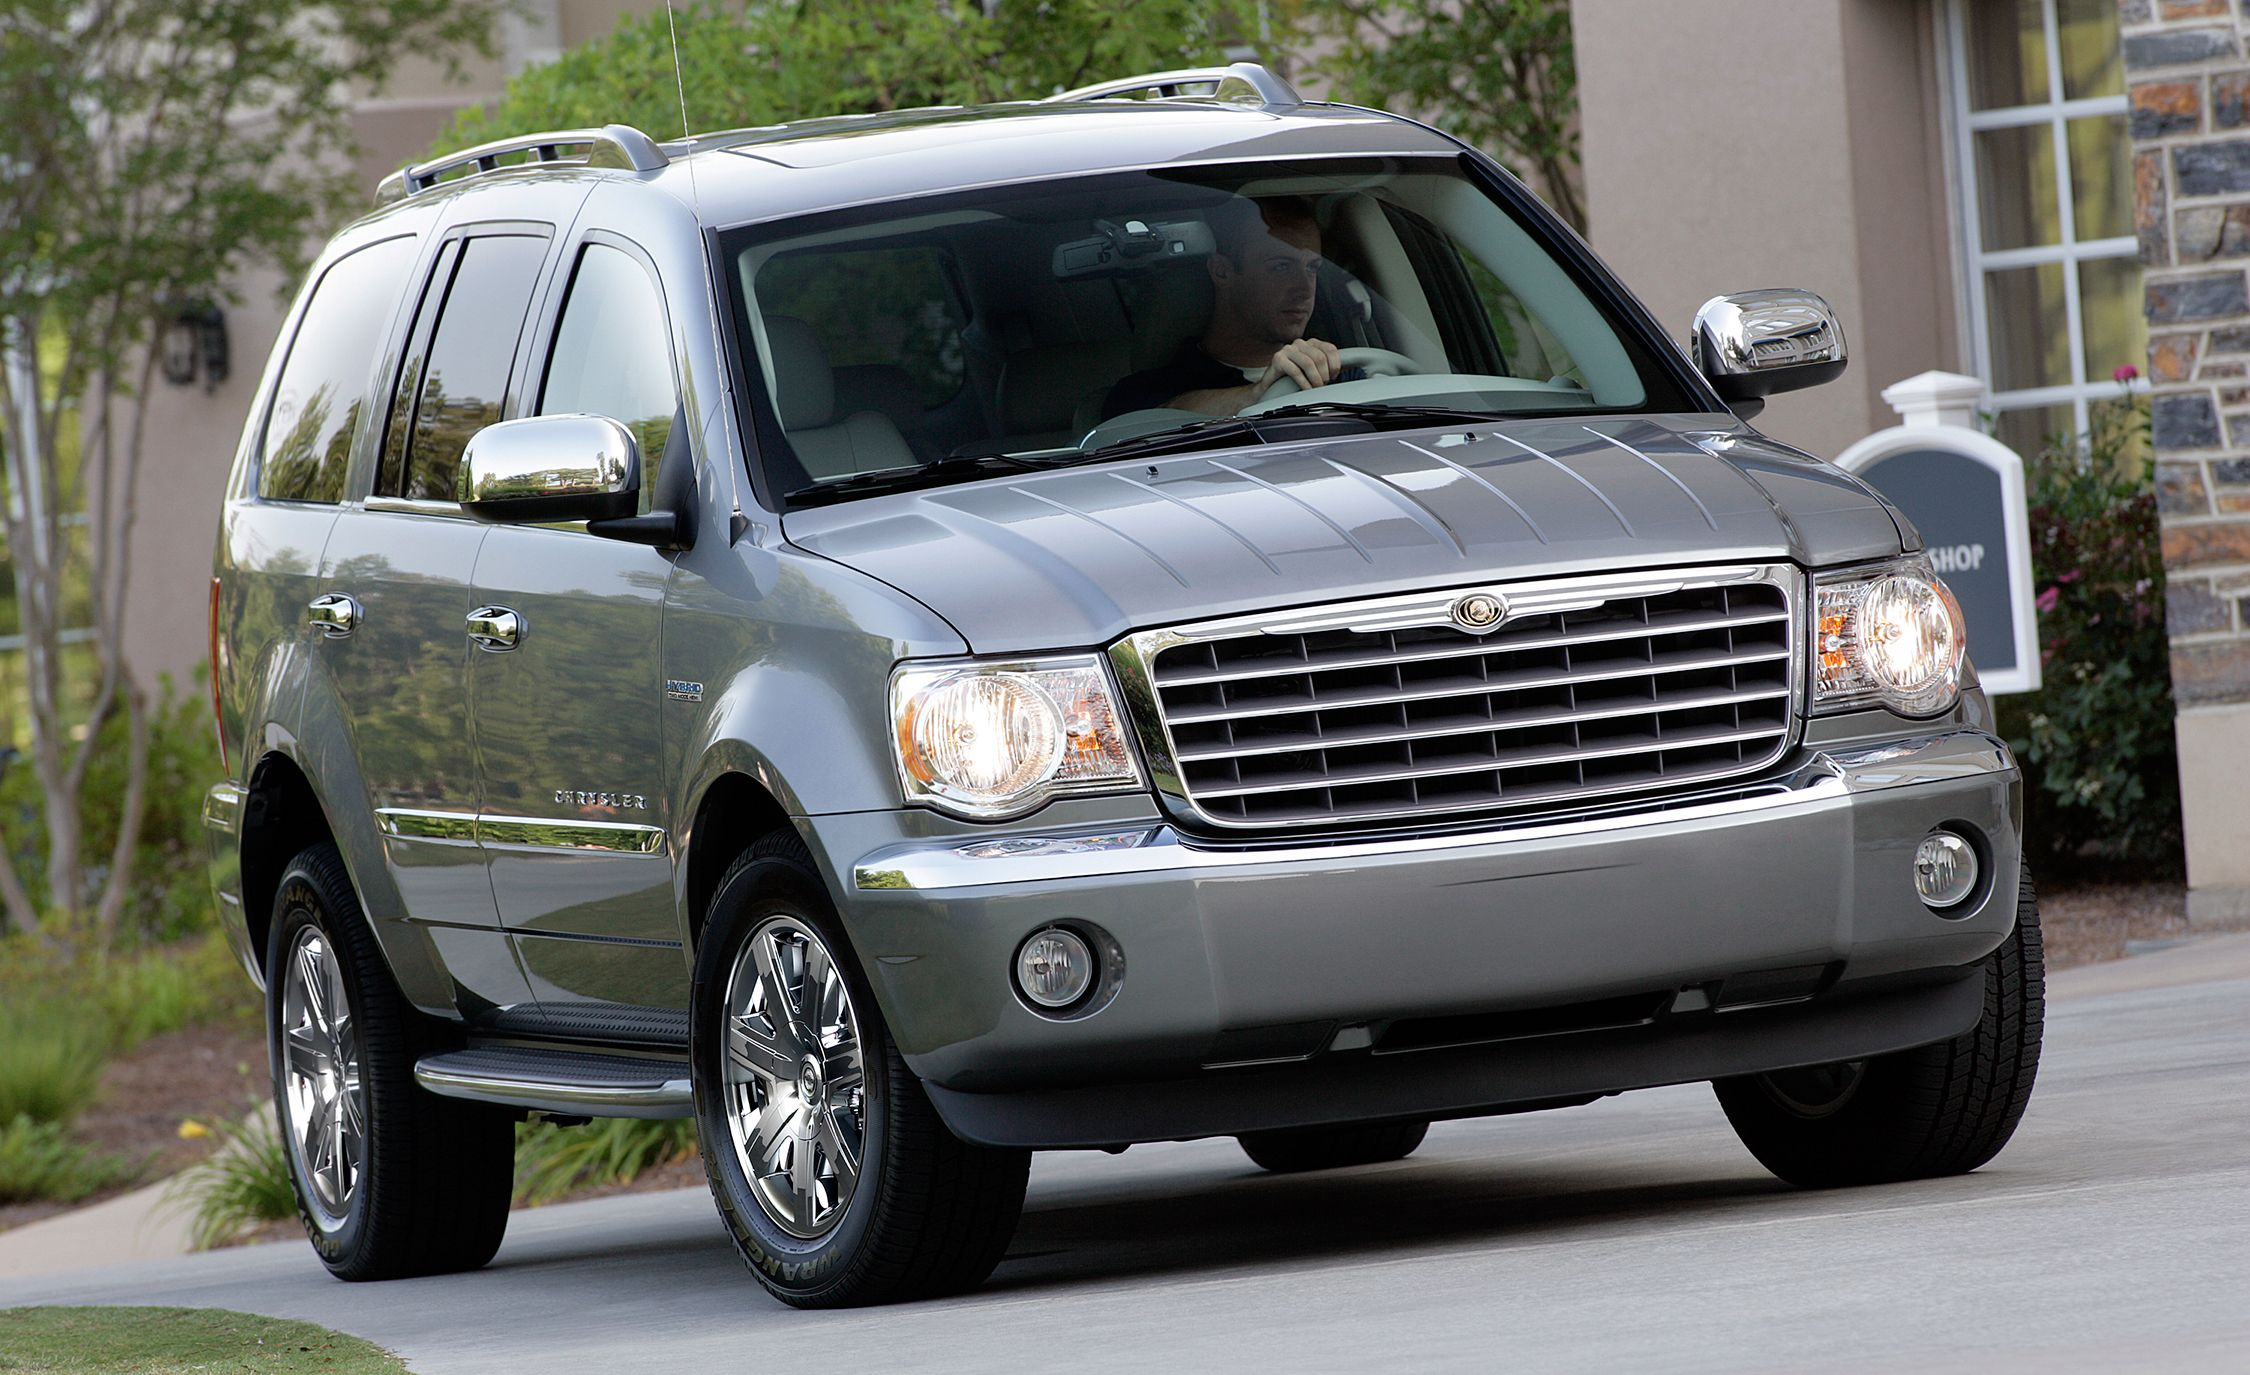 Chrysler Aspen (2007–2009) Based on the second-generation Dodge Durango, which itself looked like a Pug sucking on a lemon, the Aspen was the first SUV marketed by the Chrysler brand. That is pretty much where the fun facts end, unless you count the hybrid version Chrysler sold a few hundred of before pulling the plug.